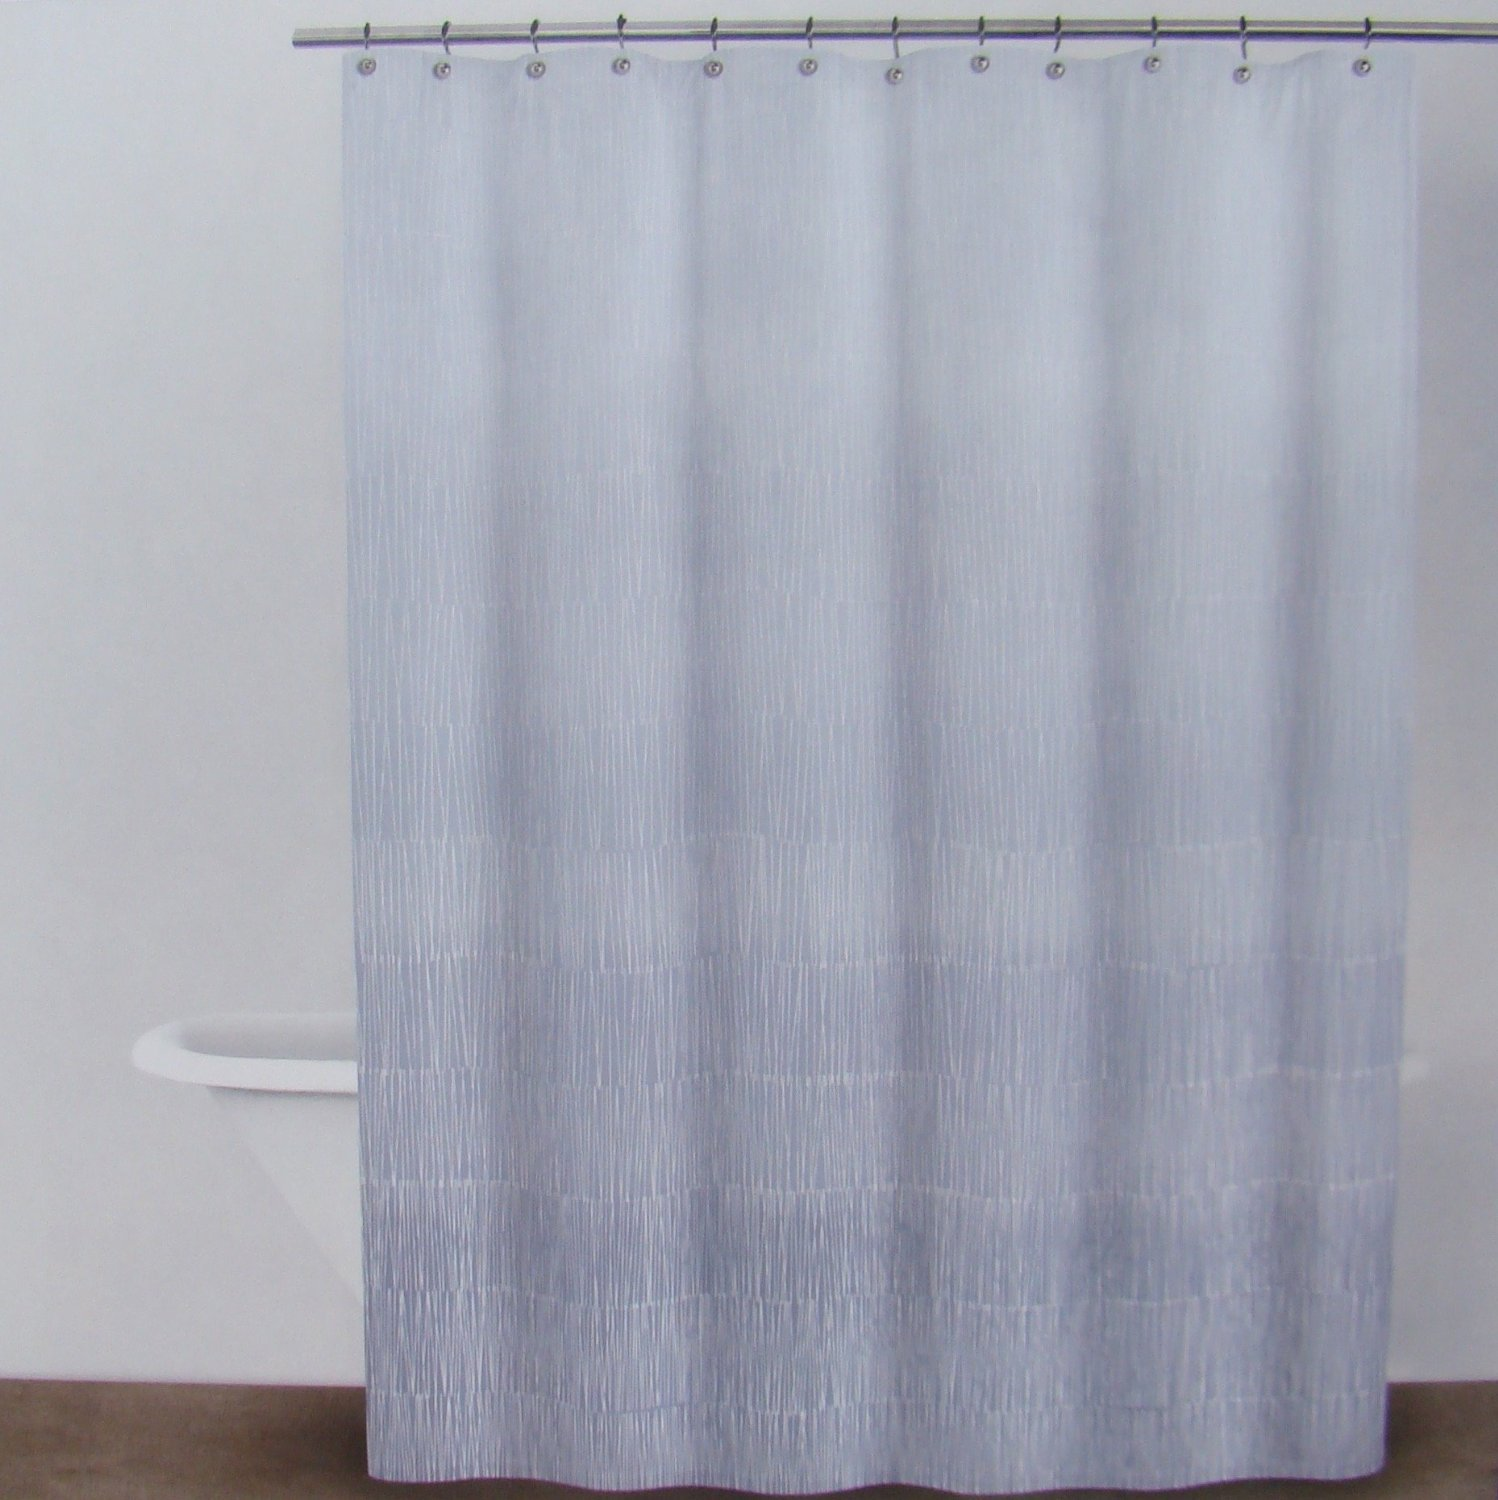 Dkny Fabric Shower Curtain Shades Of Blue And 50 Similar Items